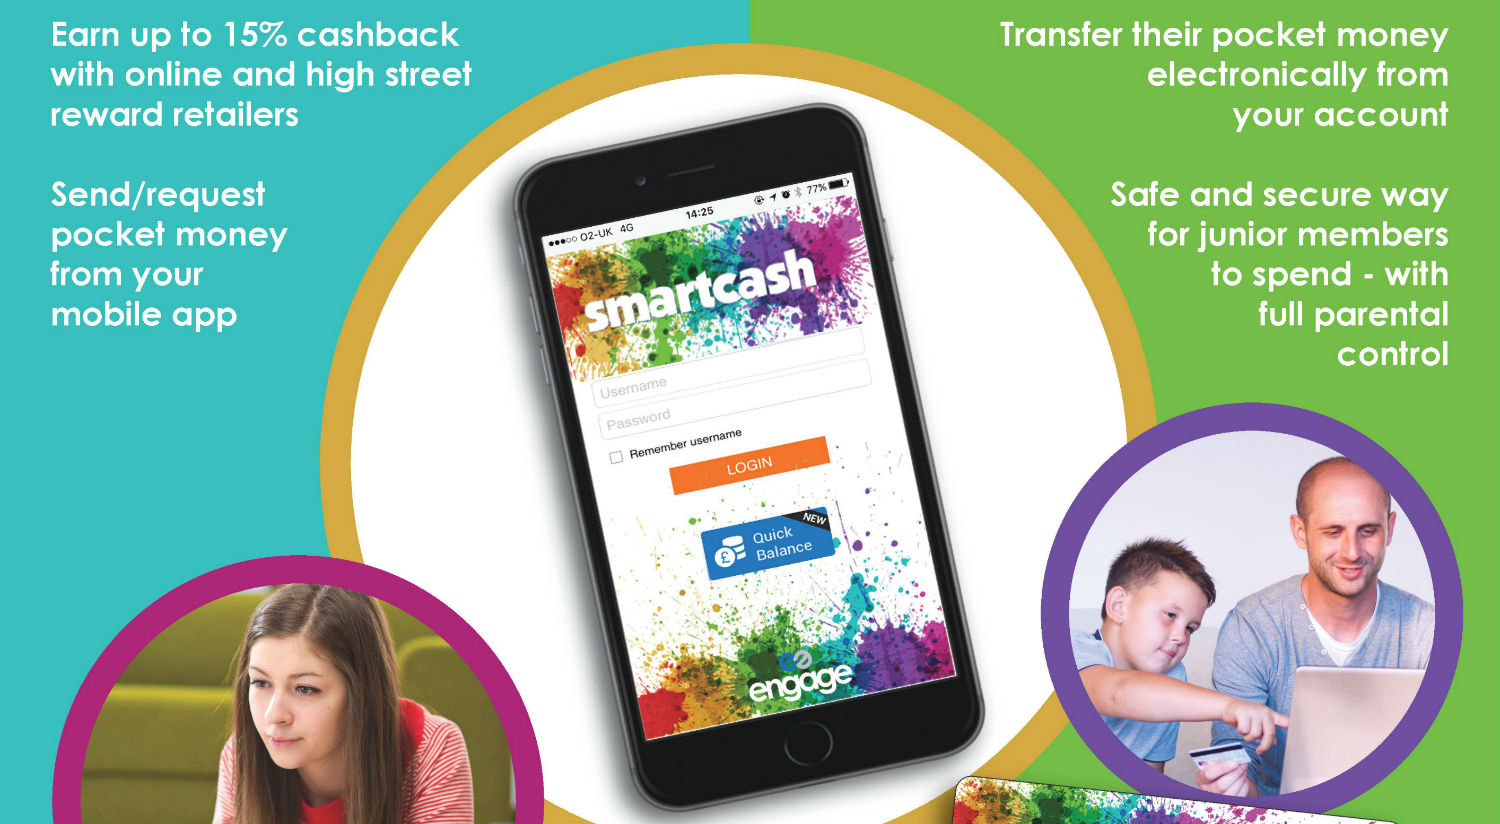 Smartcash junior account from Contis